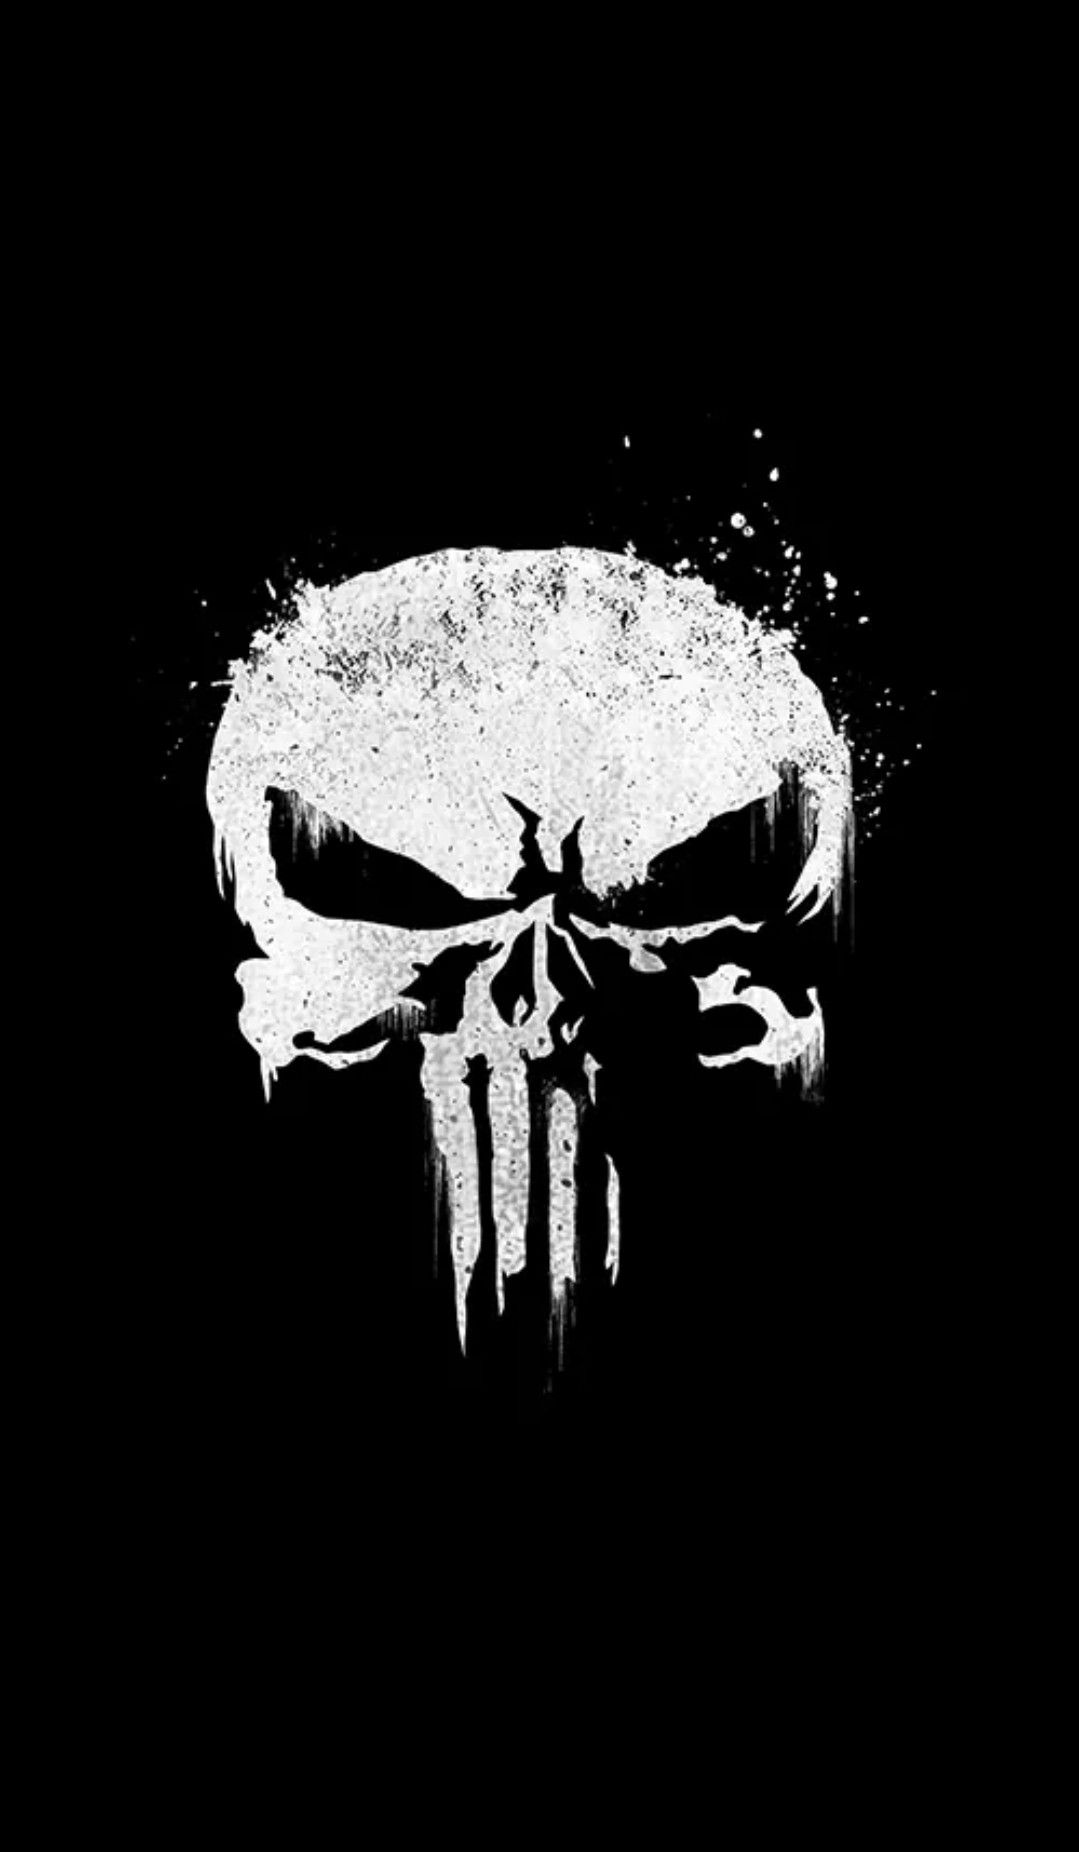 Pin By Shane Carder On The Marvel Universe Skull Wallpaper Punisher Artwork Punisher Art